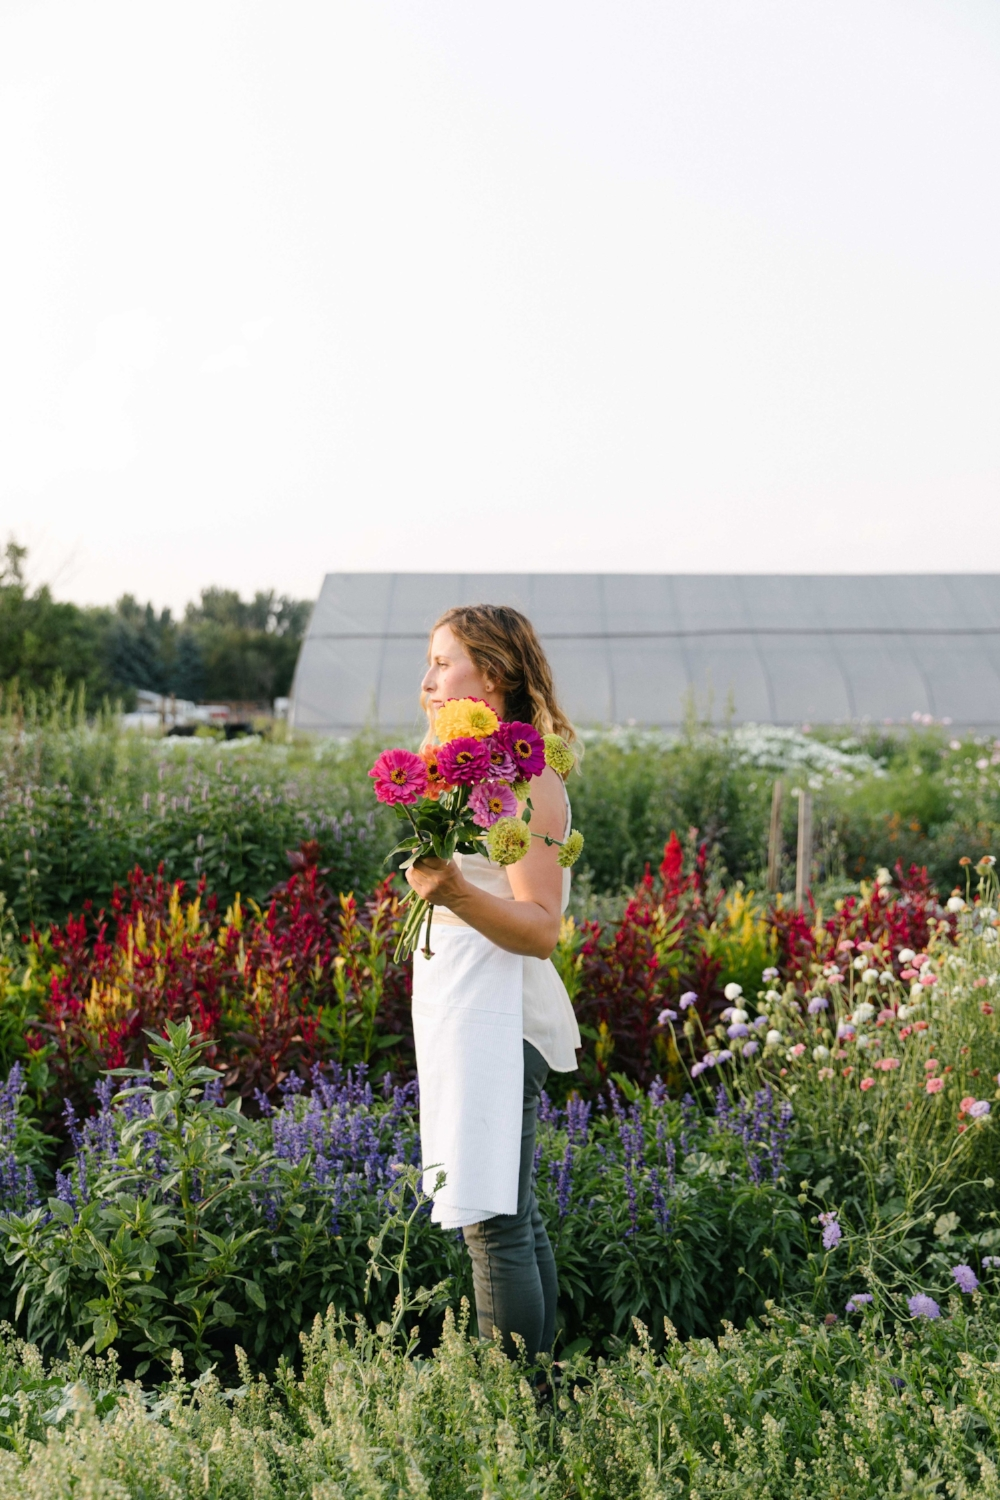 Jimena-Peck-Denver-Lifestyle-Editorial-Photographer-Native-Hill-Farm-Flowers-Plants-Colors